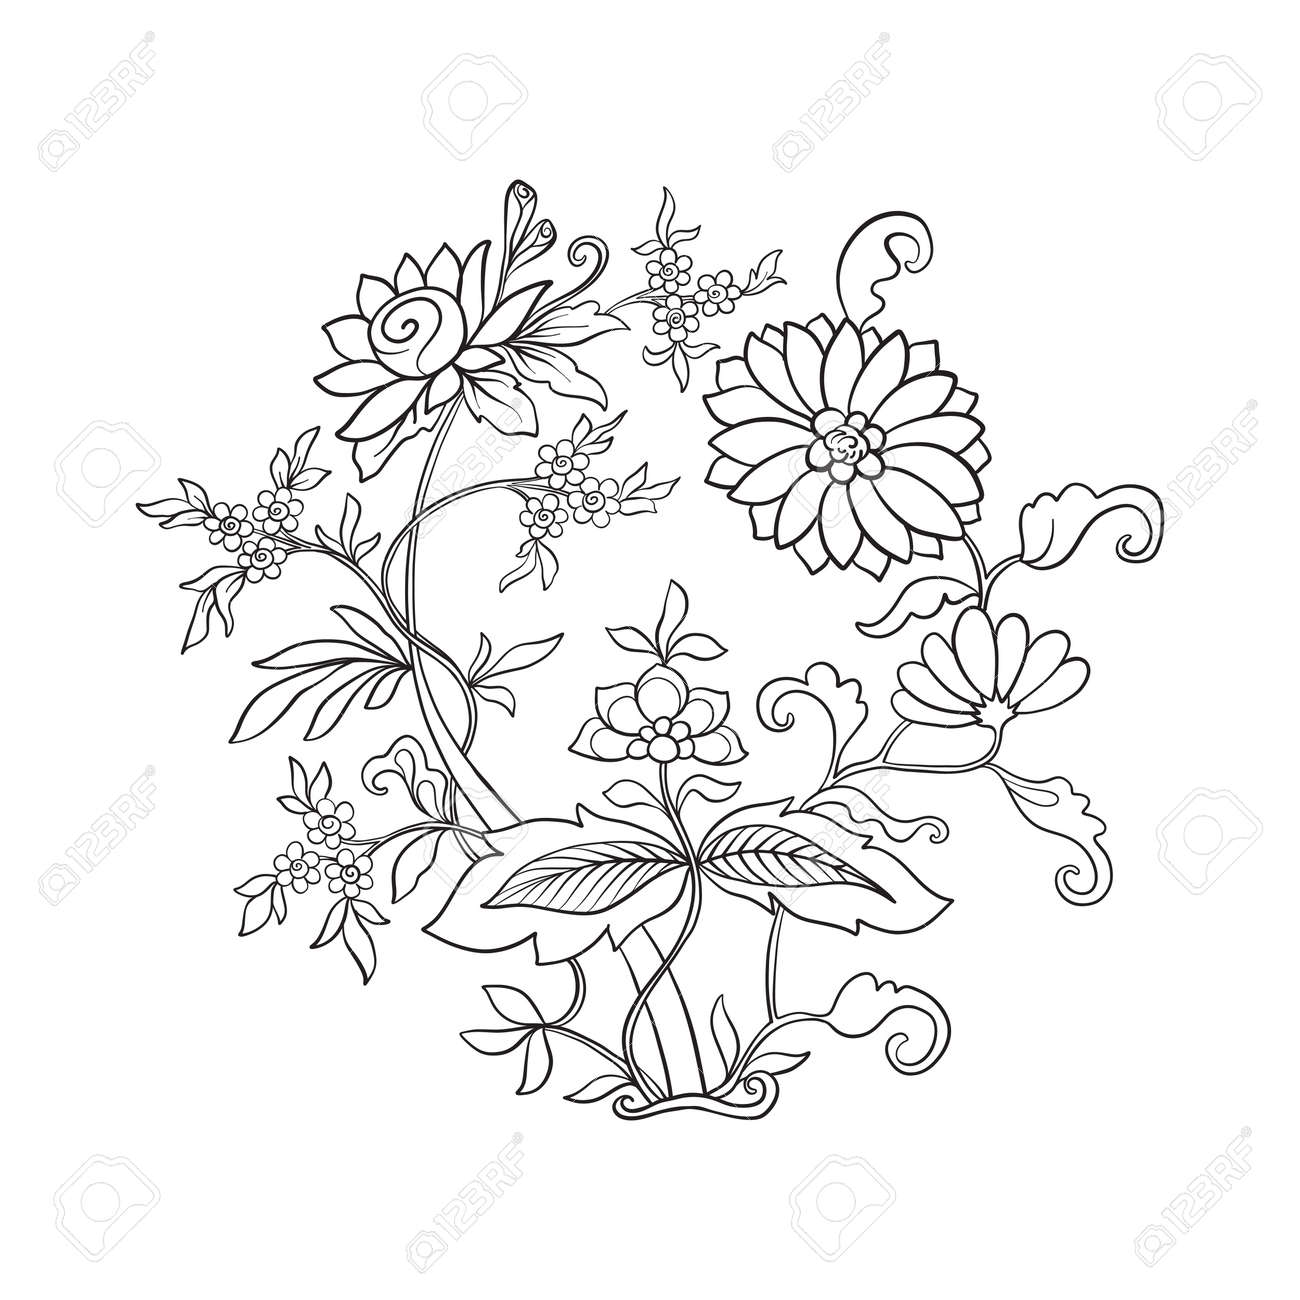 Outline Vintage Flowers Bouquet Or Pattern In Rococo, Victorian ...